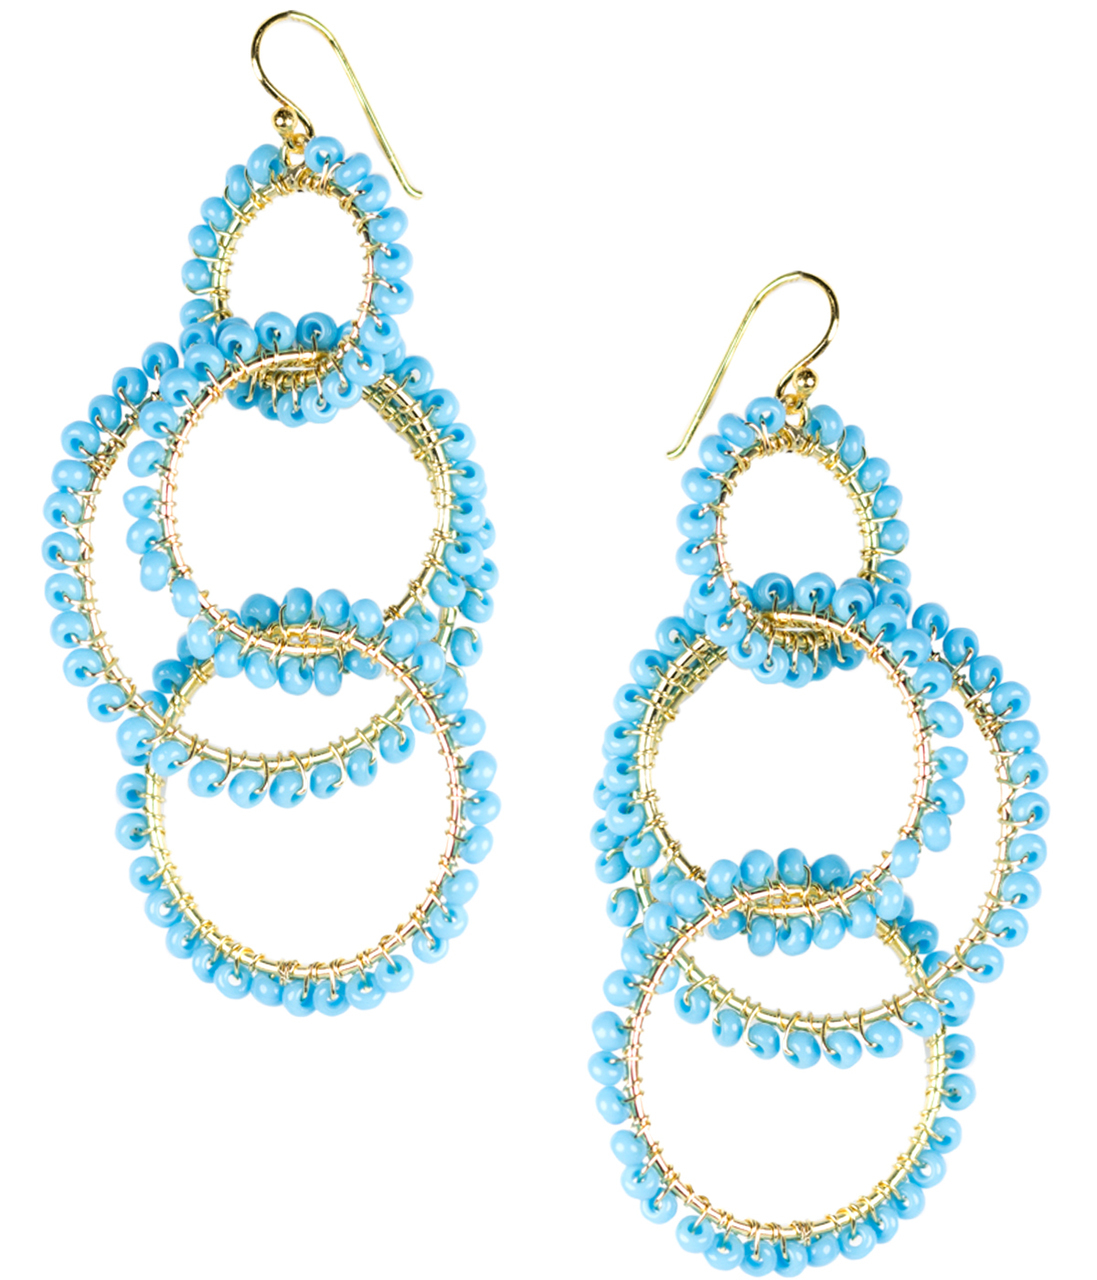 Emily Turquoise Earrings by LISI LERCH